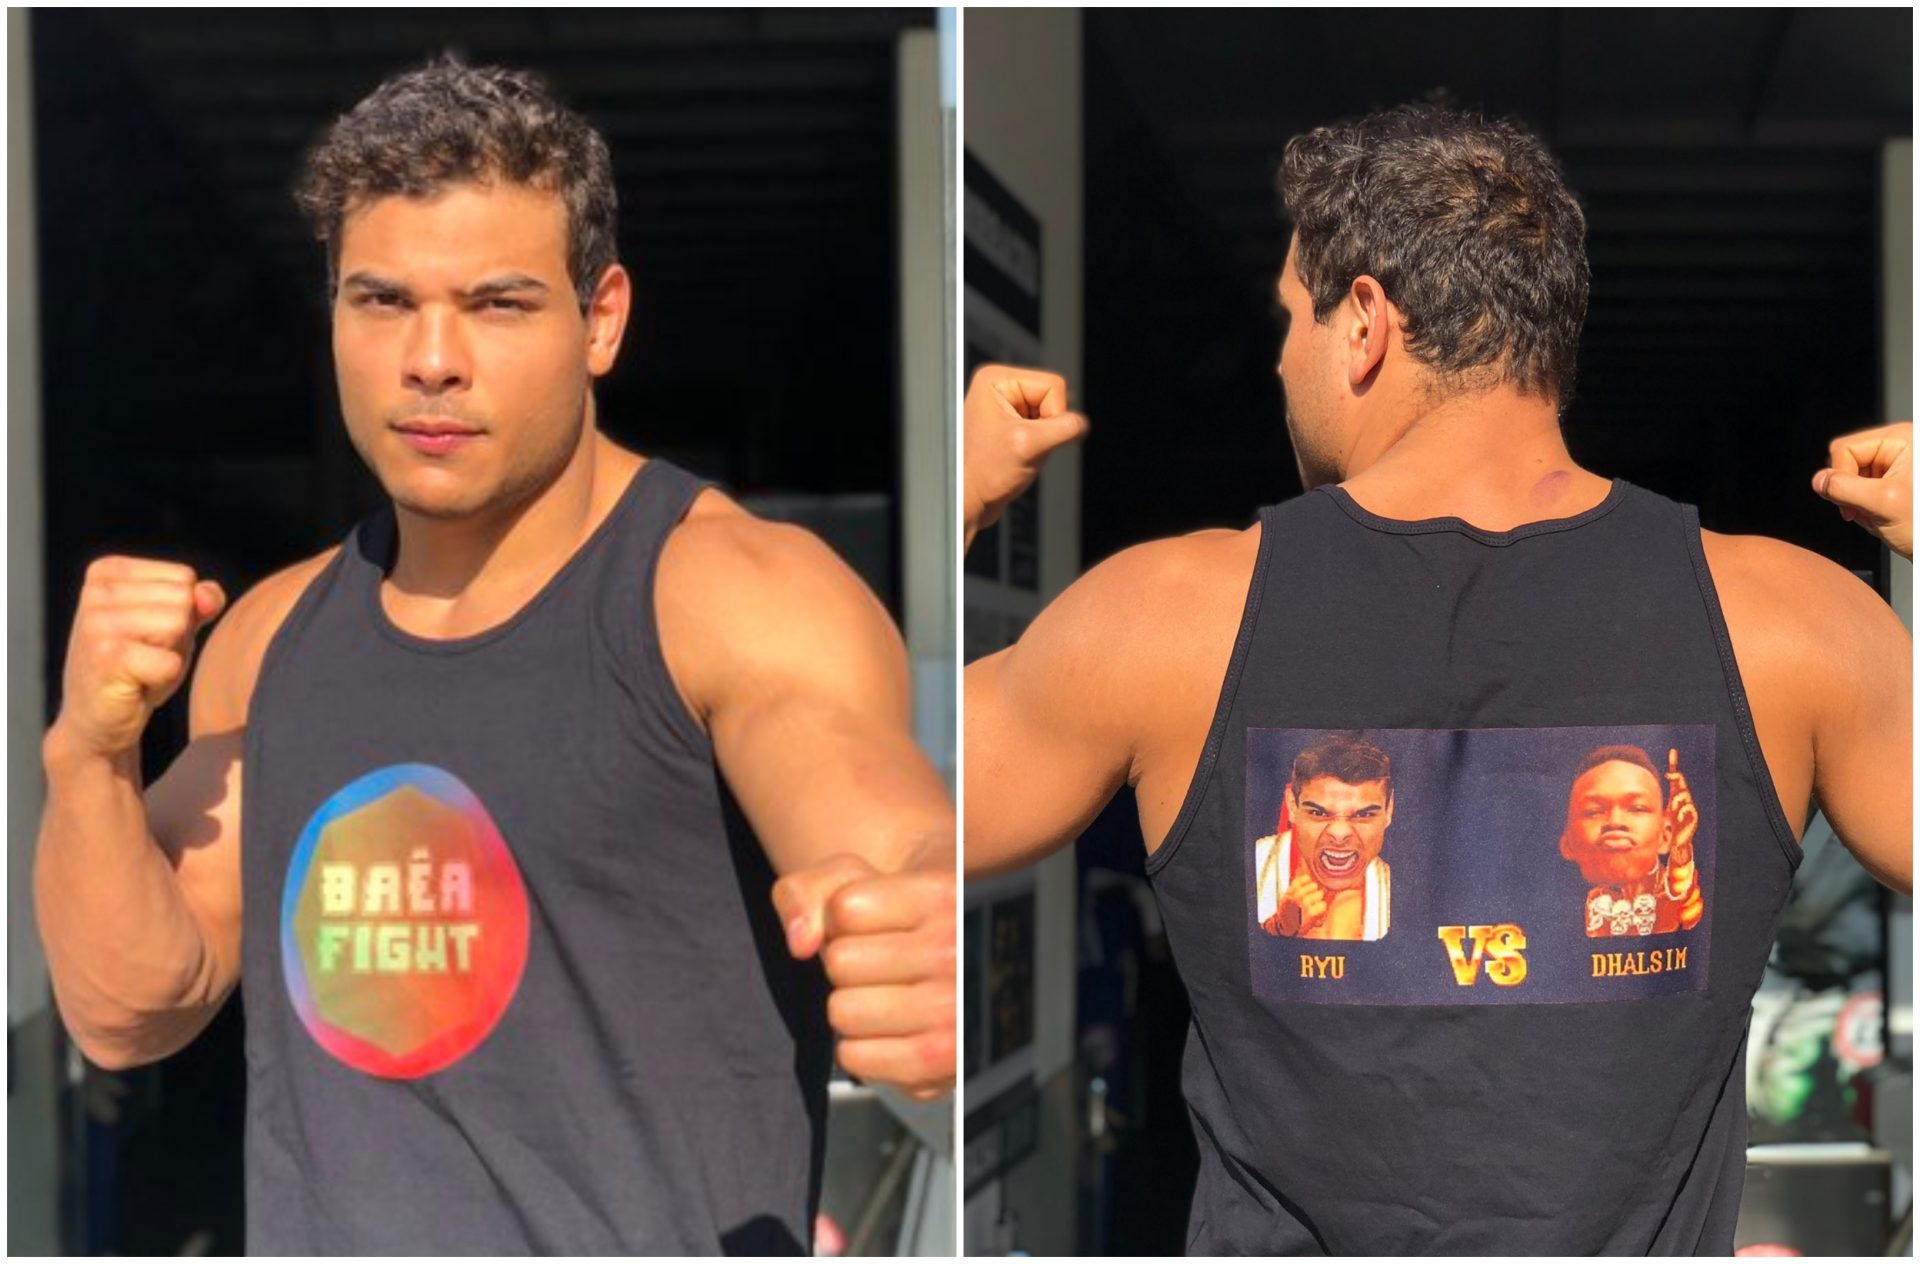 Paulo Costa puts himself on the cover of Street Fighter in reply to Israel Adesanya headlining UFC 4 - UFC 4